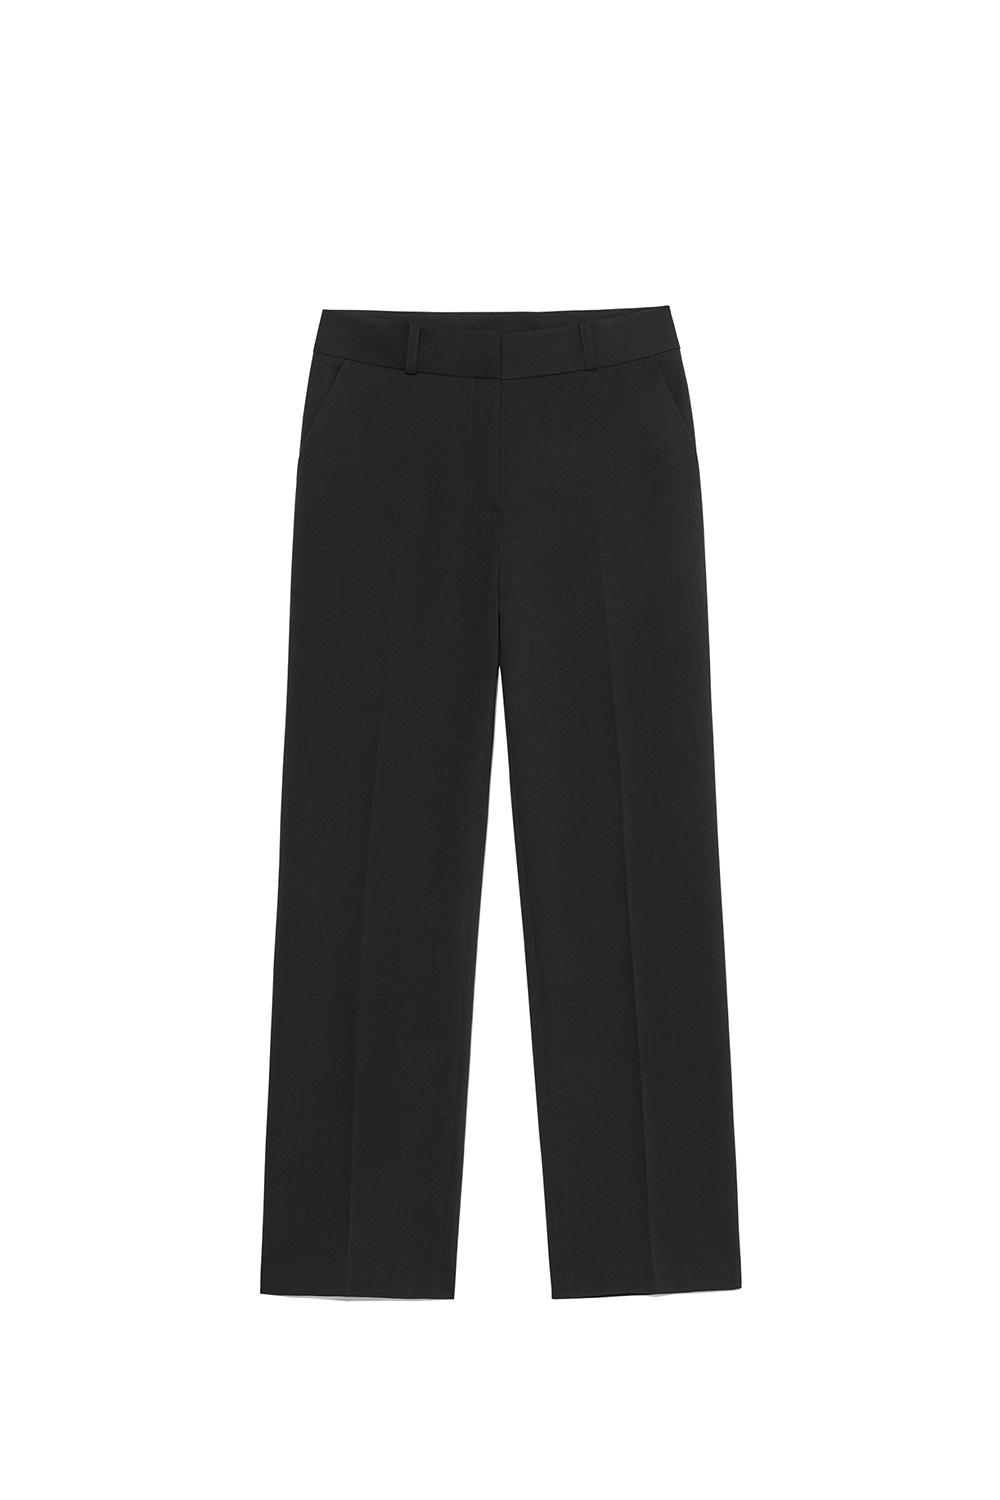 Long Slacks Women [Black]